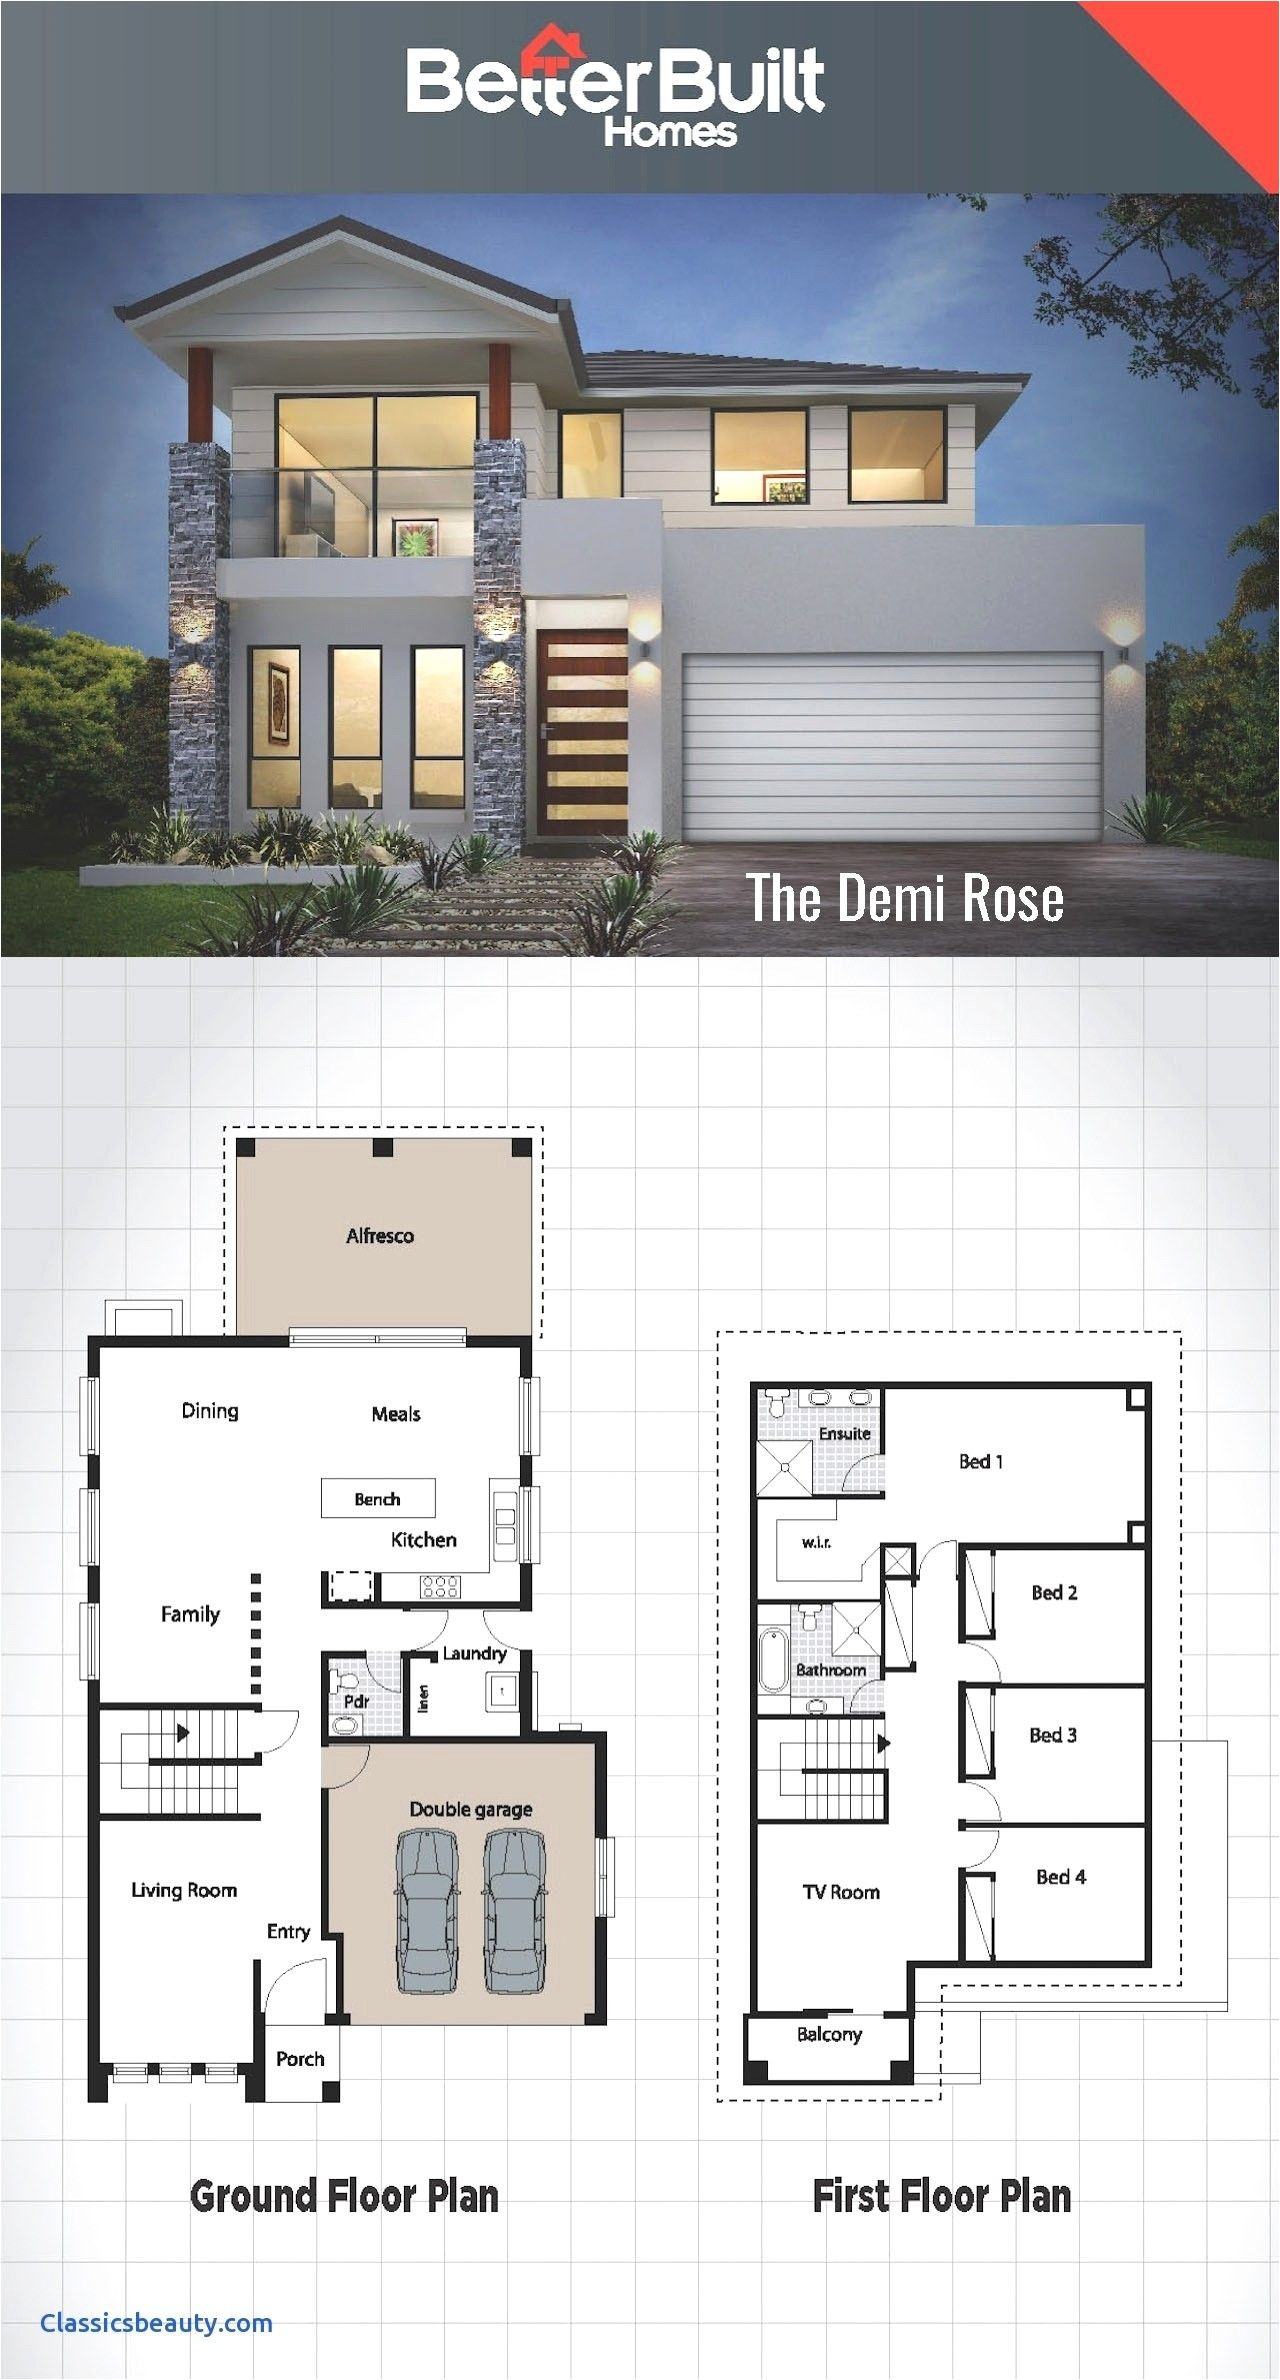 Build A Home for Under 100k Lovely House Plans Under 200k to Build Philippines